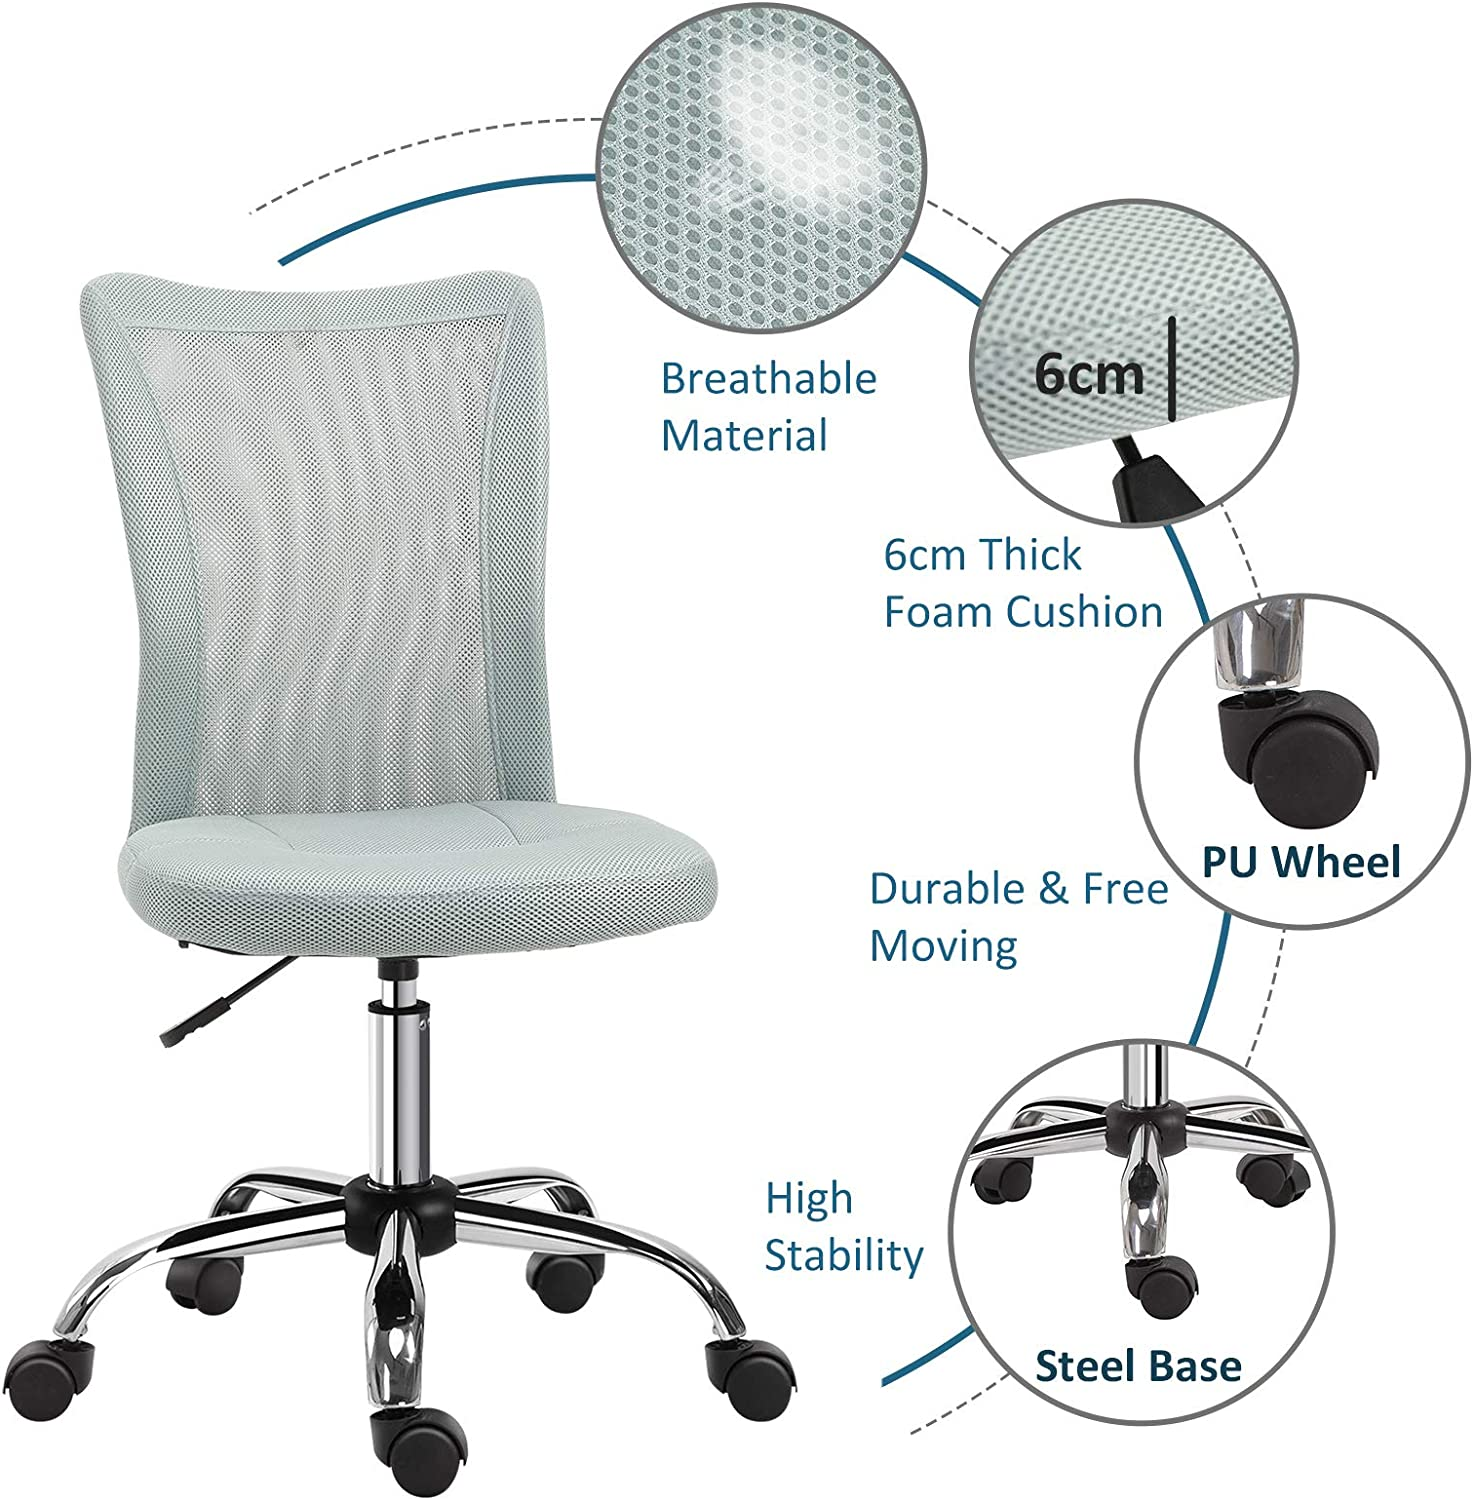 Desk Chairs Home Kitchen Vinsetto Armless Office Chair Ergonomic Padded Height Adjustable W Mesh Back 5 Wheel Base Swivel Comfortable Moveable Home Seat Work Black